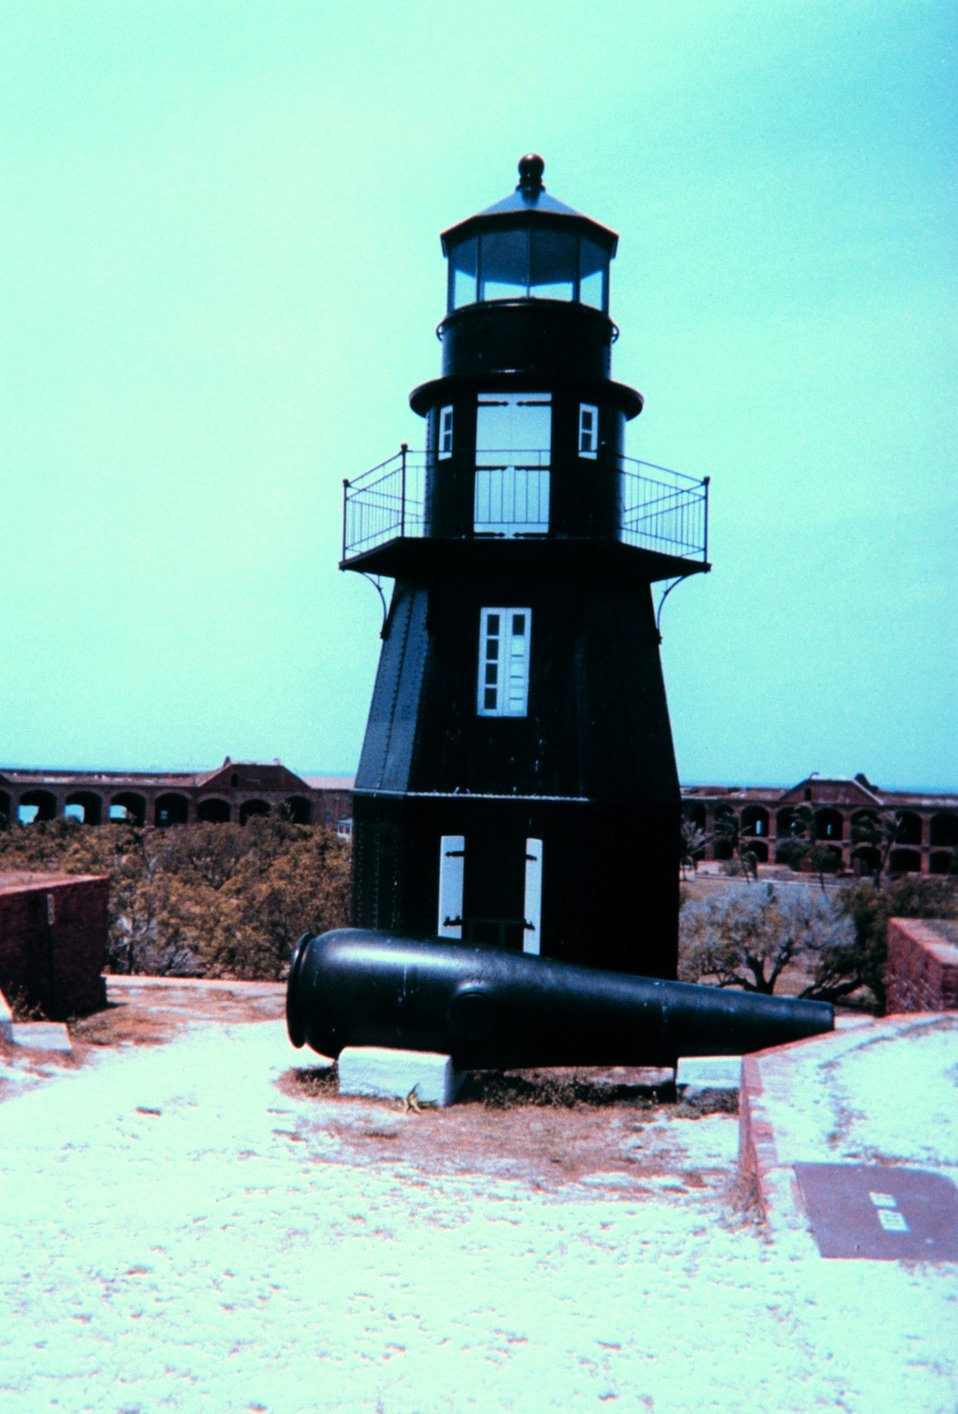 The lighthouse at Fort Jefferson, Dry Tortugas National Park.